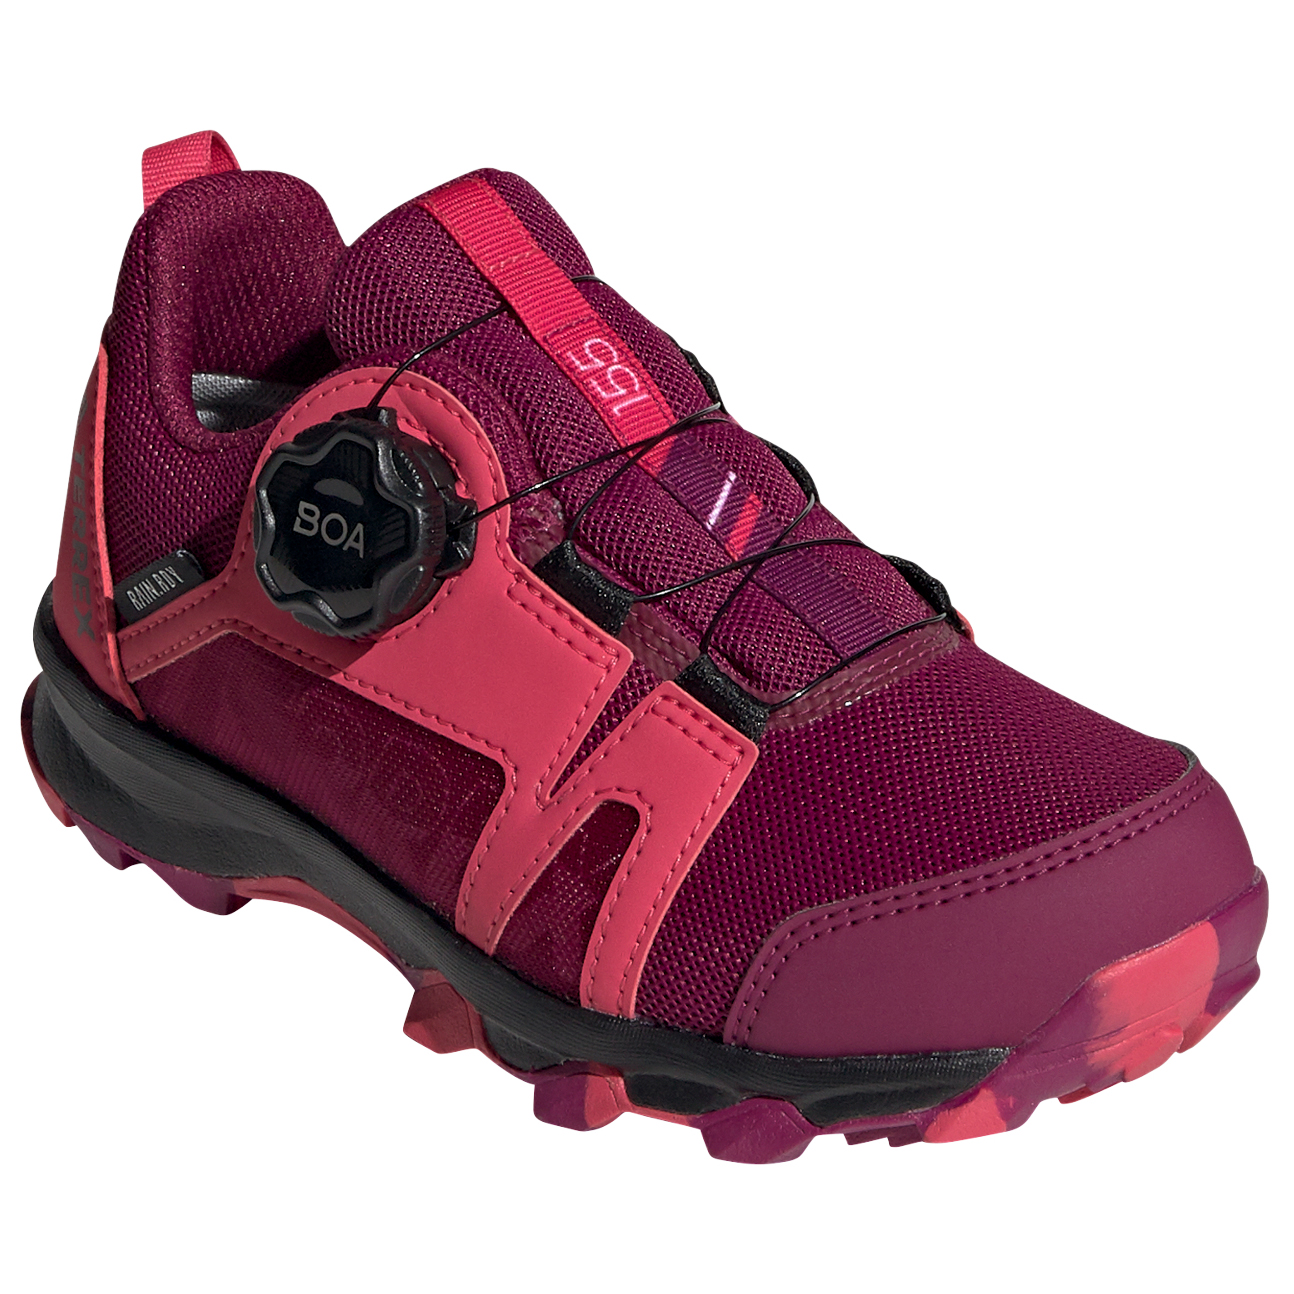 adidas - Kid's Terrex Agravic Boa Rain Ready - Multisport shoes - Power  Berry / Power Pink / Ftwr White | 28 (EU)